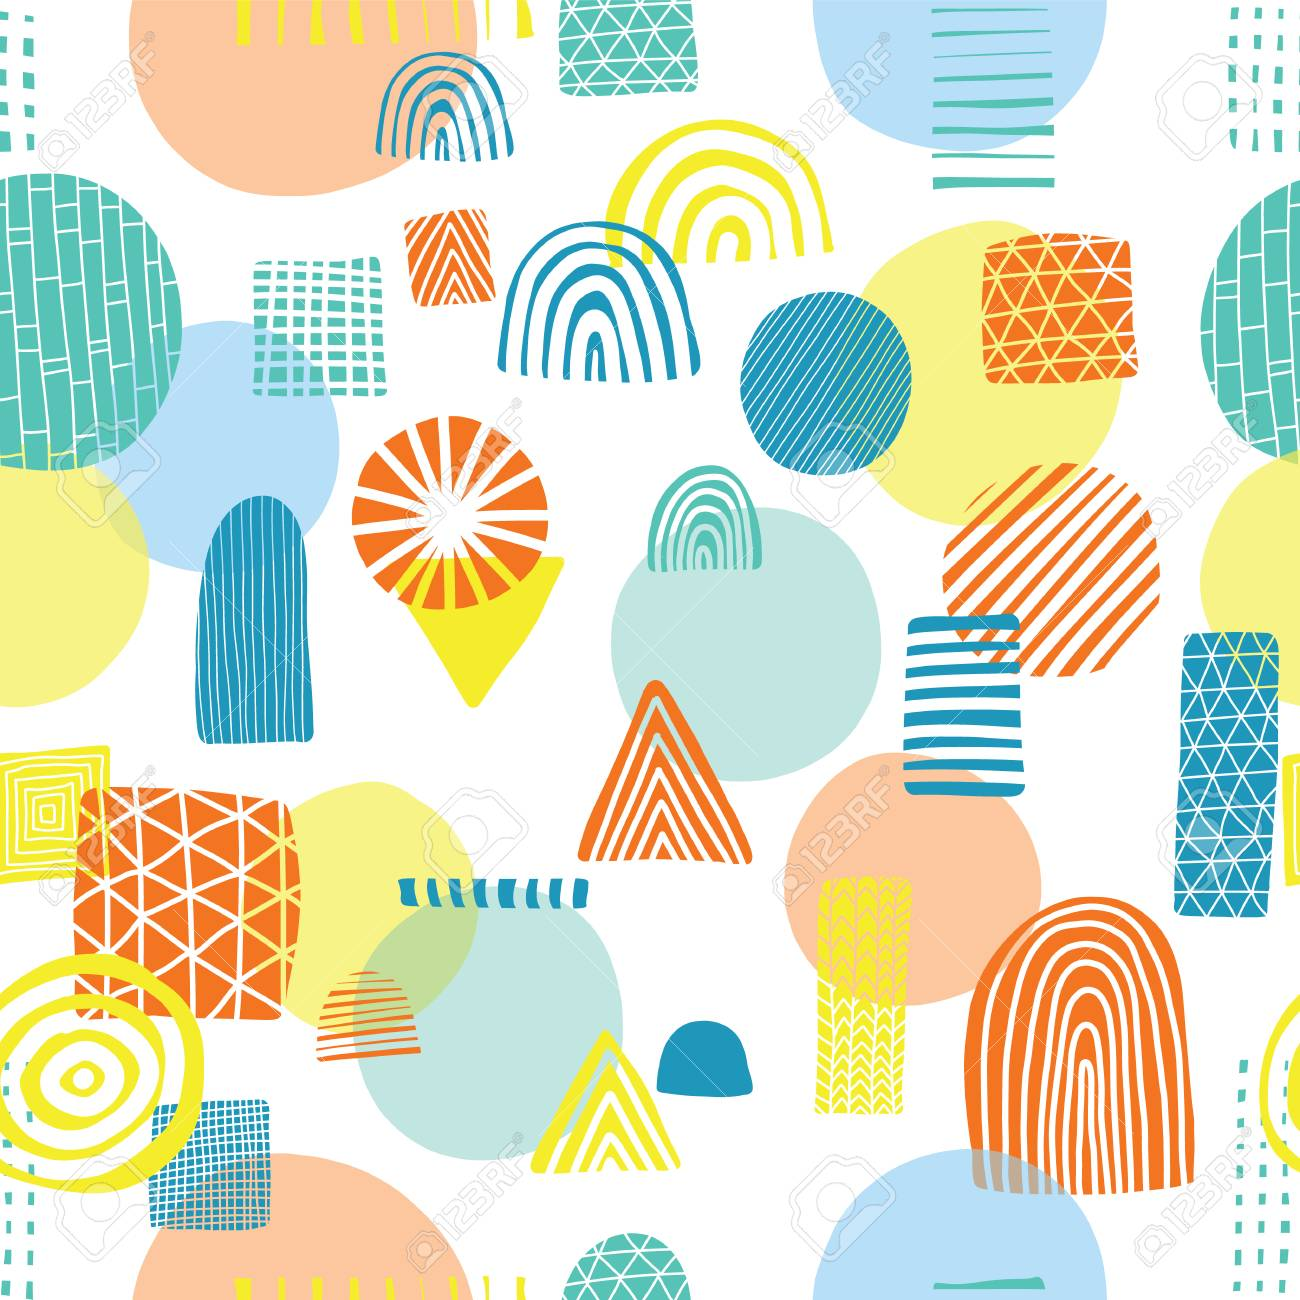 Abstract Shapes Seamless Vector Pattern Triangles Circles